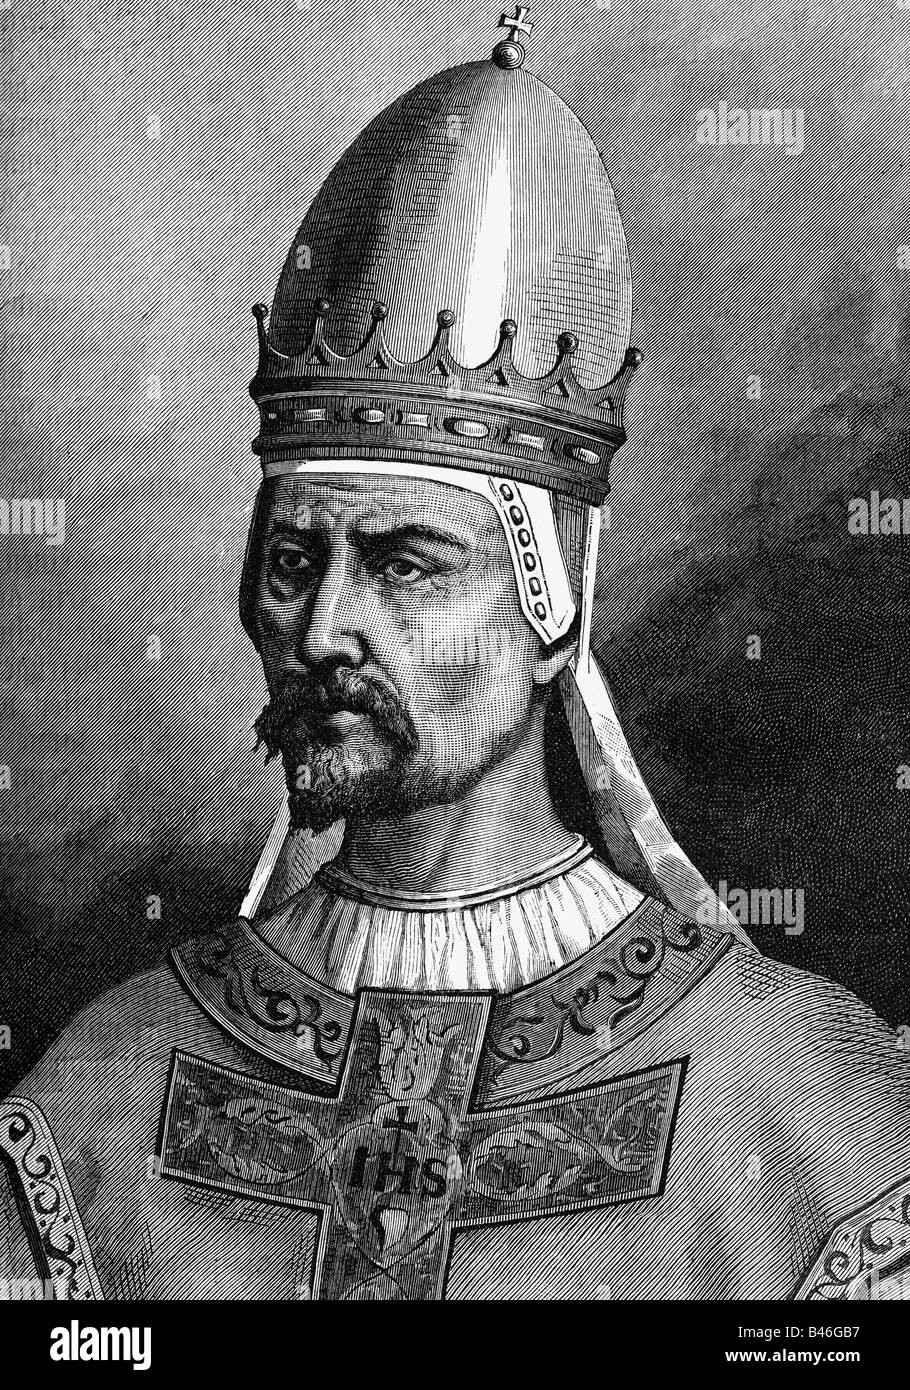 Gregory VII (Hildebrand of Sovana), circa 1020 - 25.5.1085, Pope  22.41073 - 25.5.1085, portrait, wood engraving, - Stock Image